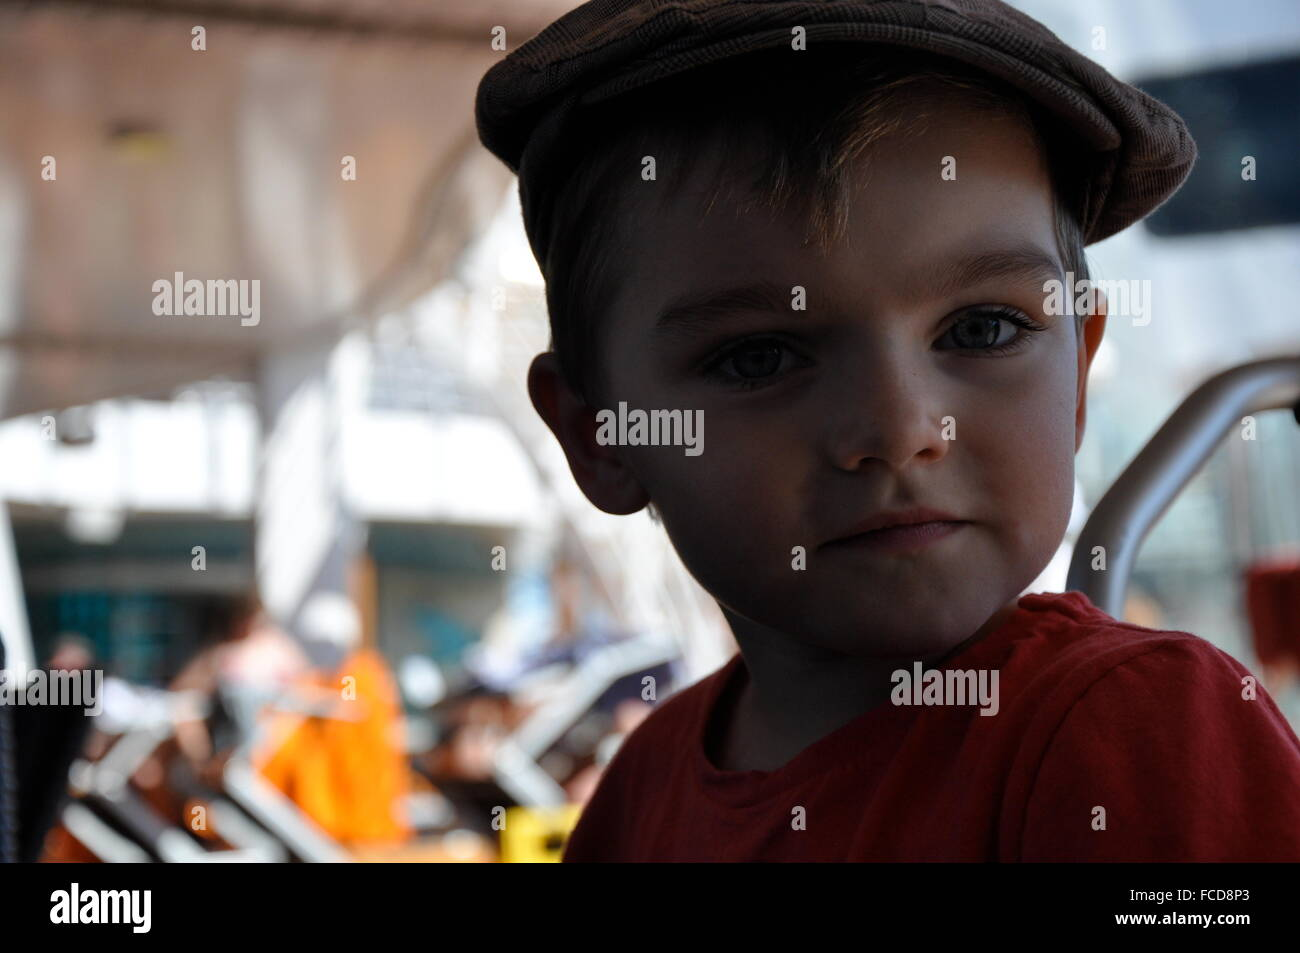 Portrait Of Cute Boy In Amusement Park - Stock Image